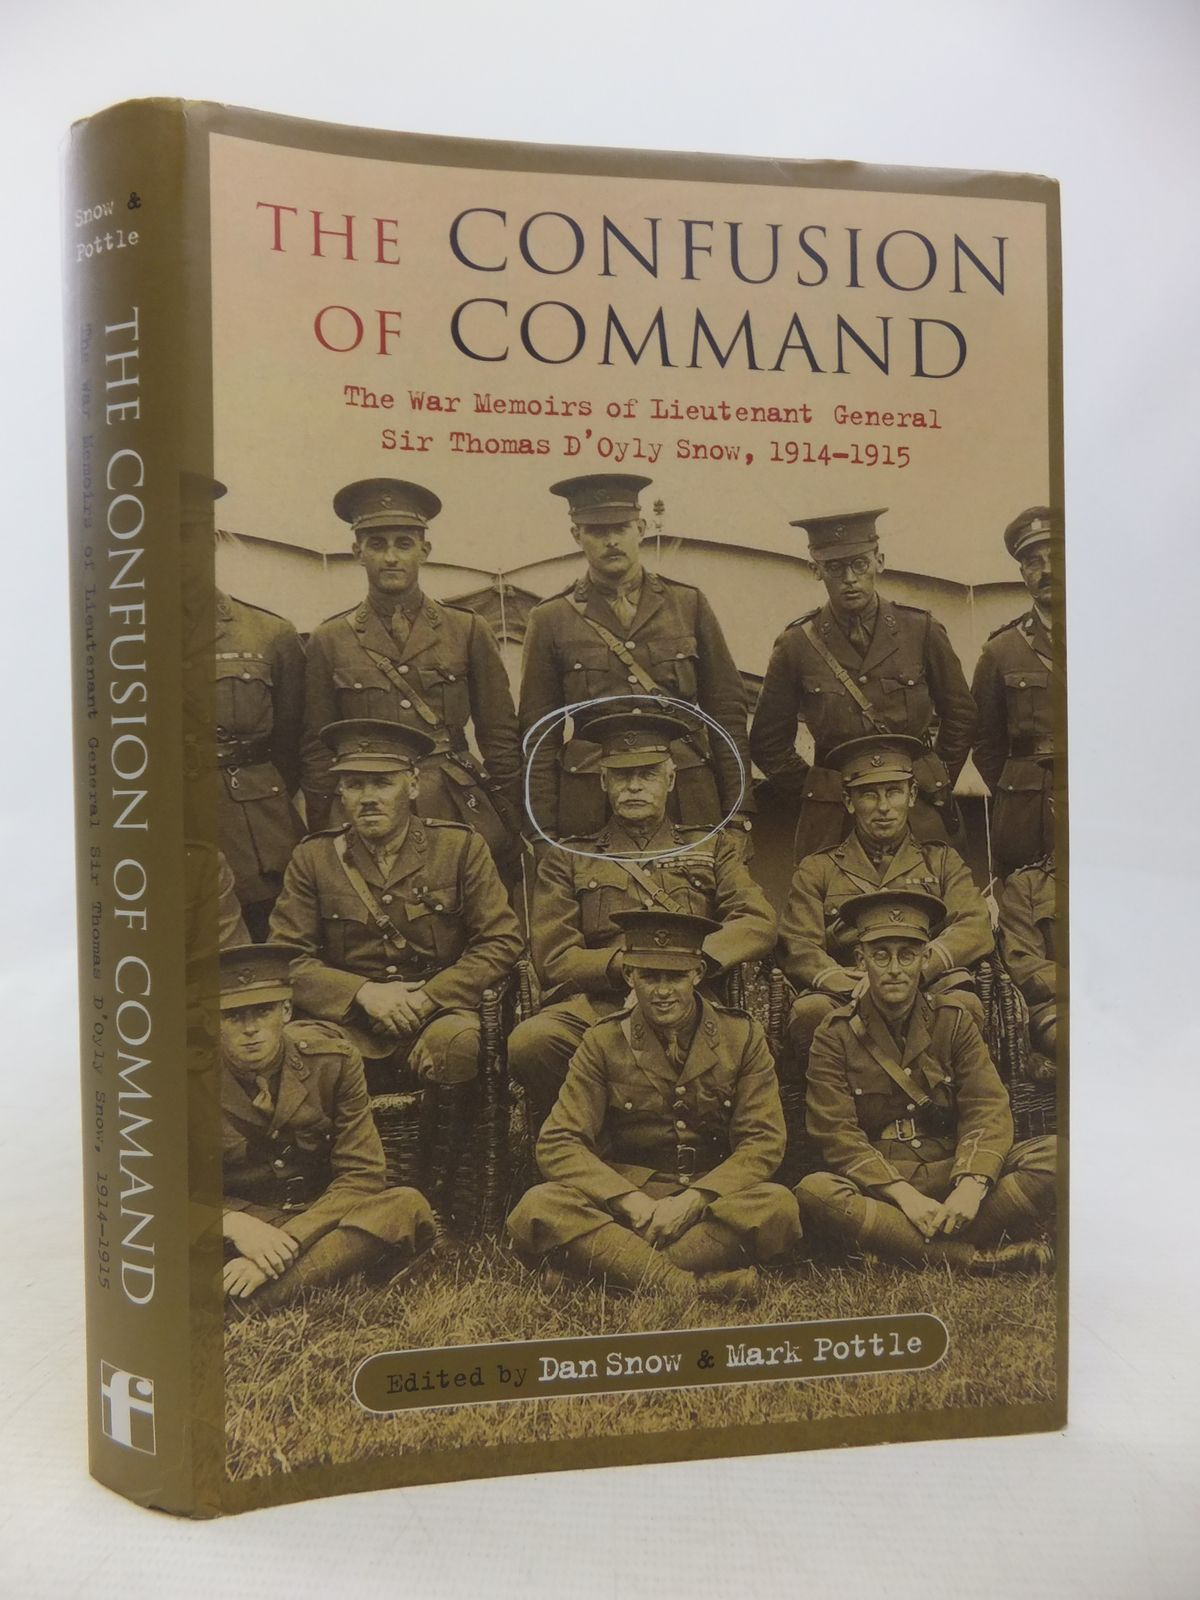 Photo of THE CONFUSION OF COMMAND THE WAR MEMOIRS OF LIEUTENANT GENERAL SIR THOMAS D'OYLY SNOW 1914-1915 written by Snow, Thomas D'Oyly Snow, Dan Pottle, Mark published by Frontline Books (STOCK CODE: 2115193)  for sale by Stella & Rose's Books